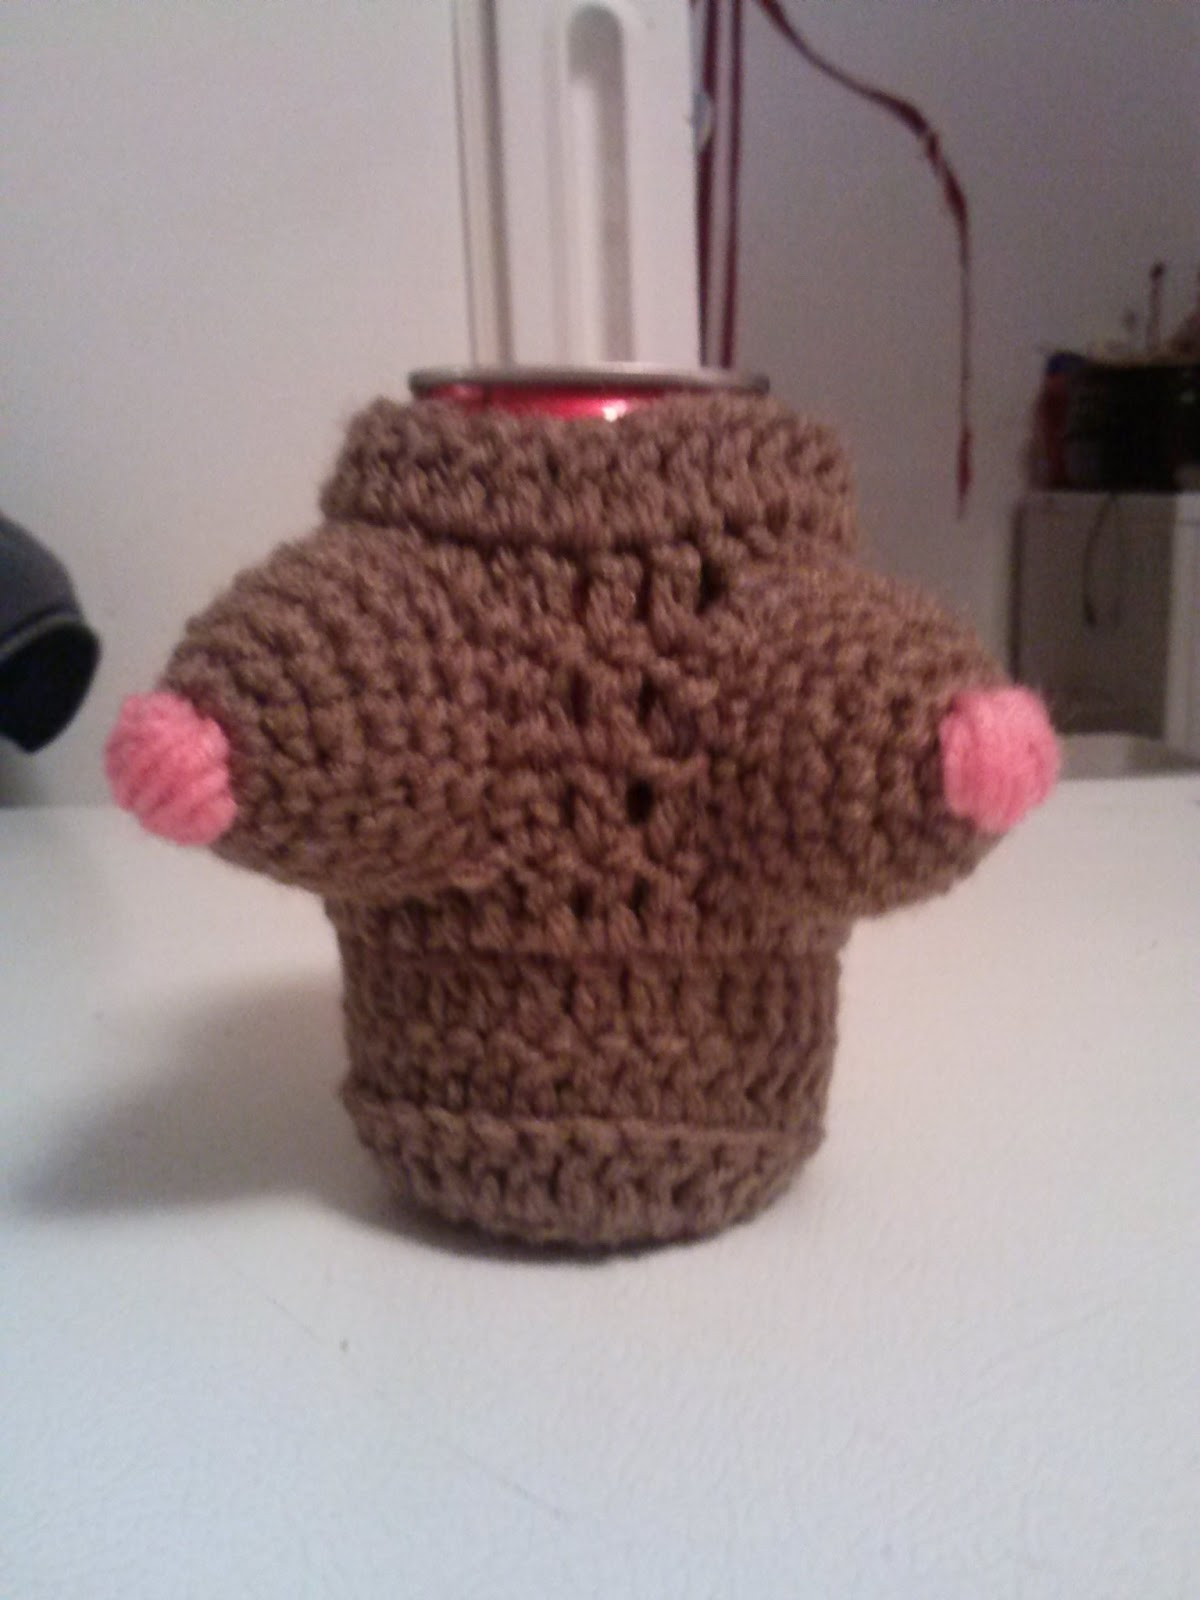 Crochet Patterns For Koozies : Family, Books and Crochet...Oh My!: Boobie Koozies